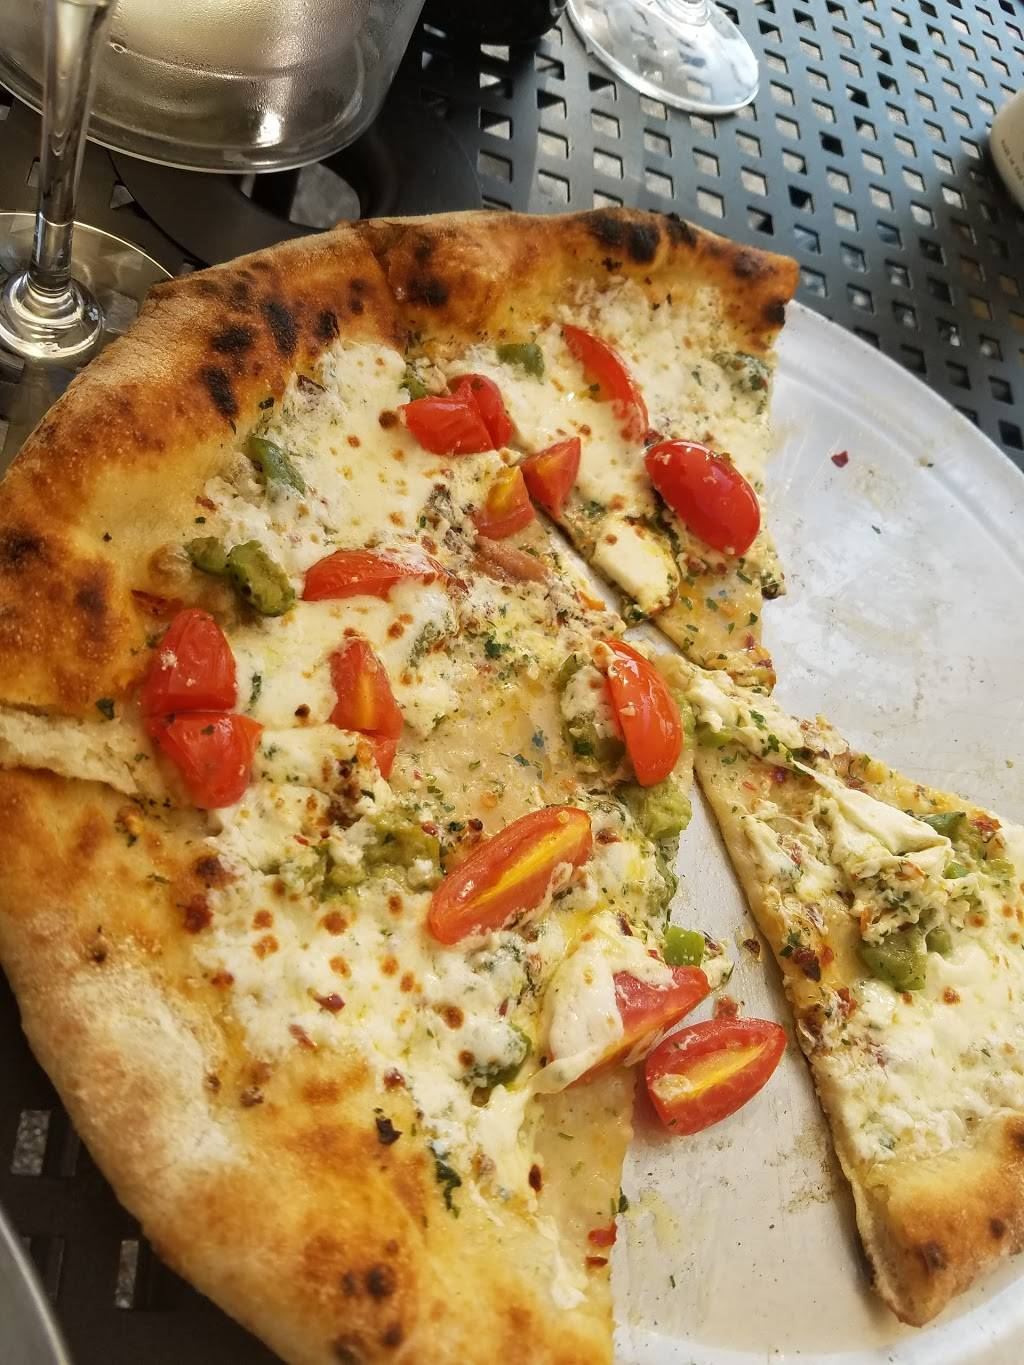 Pizza Brama | restaurant | 14525 Montevideo Rd, Poolesville, MD 20837, USA | 2404069176 OR +1 240-406-9176